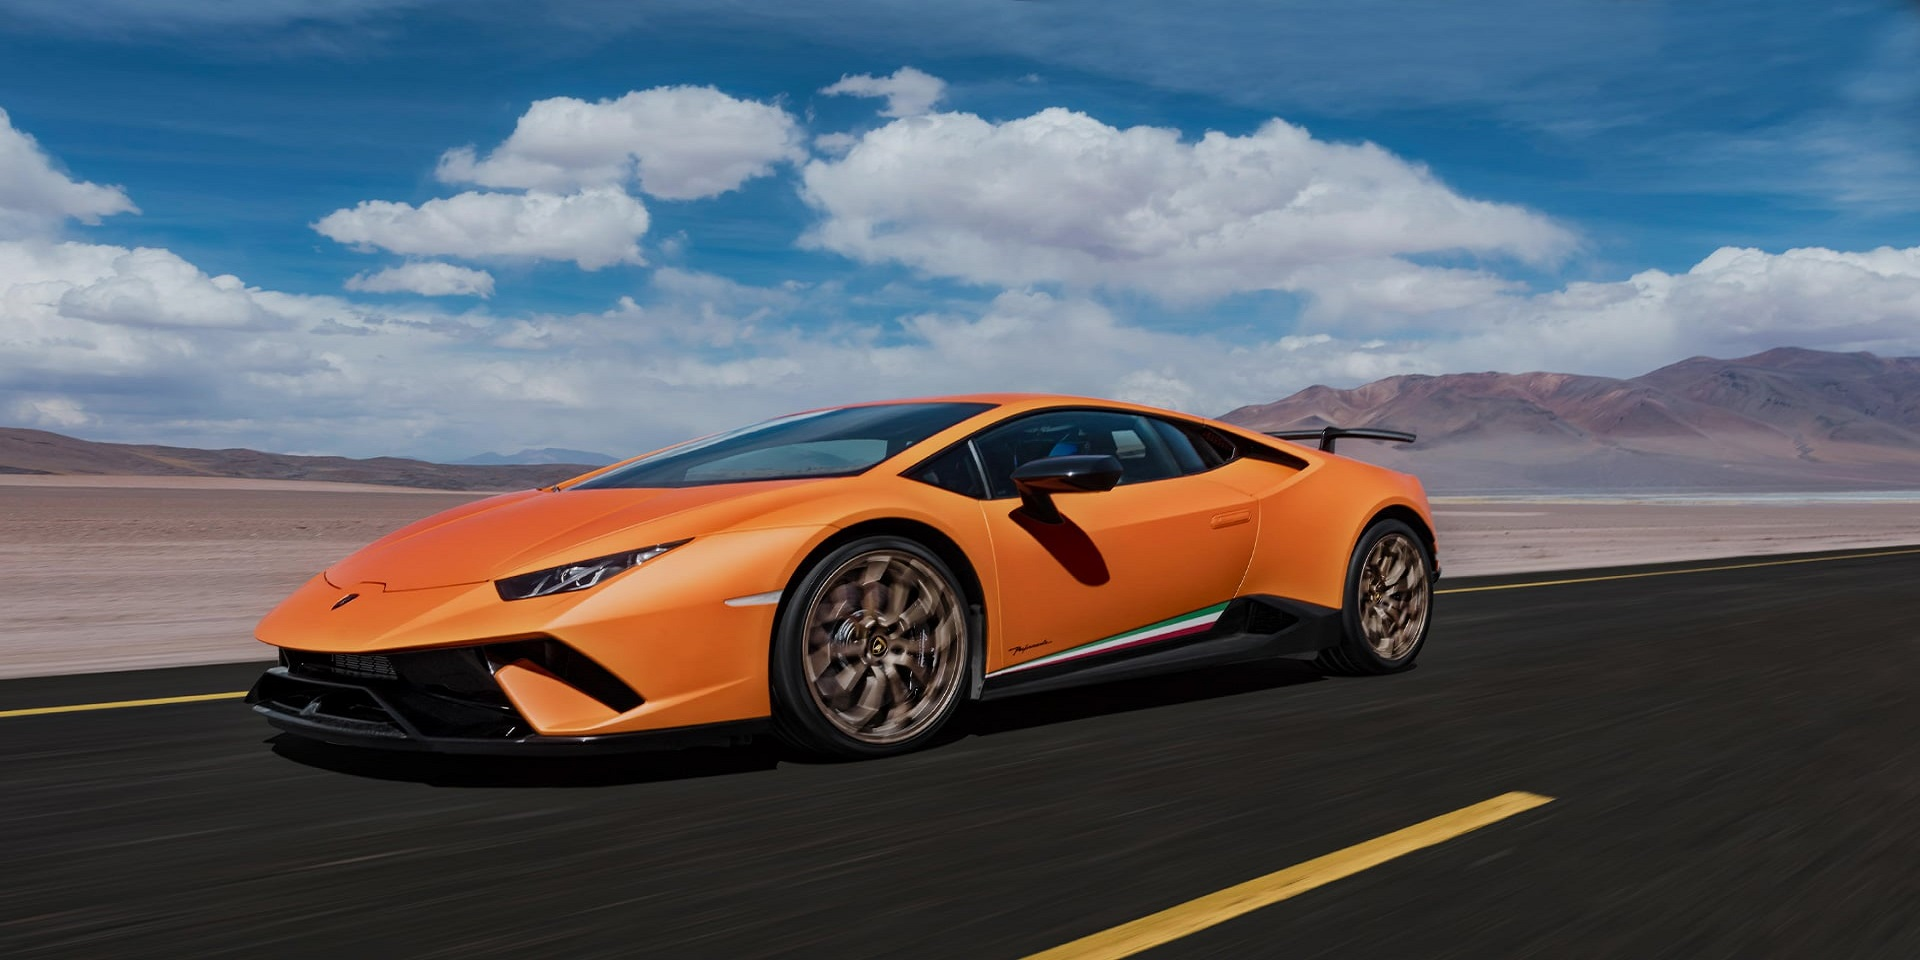 Lamborghini S Hot New Supercar The 2018 Huracan Performante Price And Details